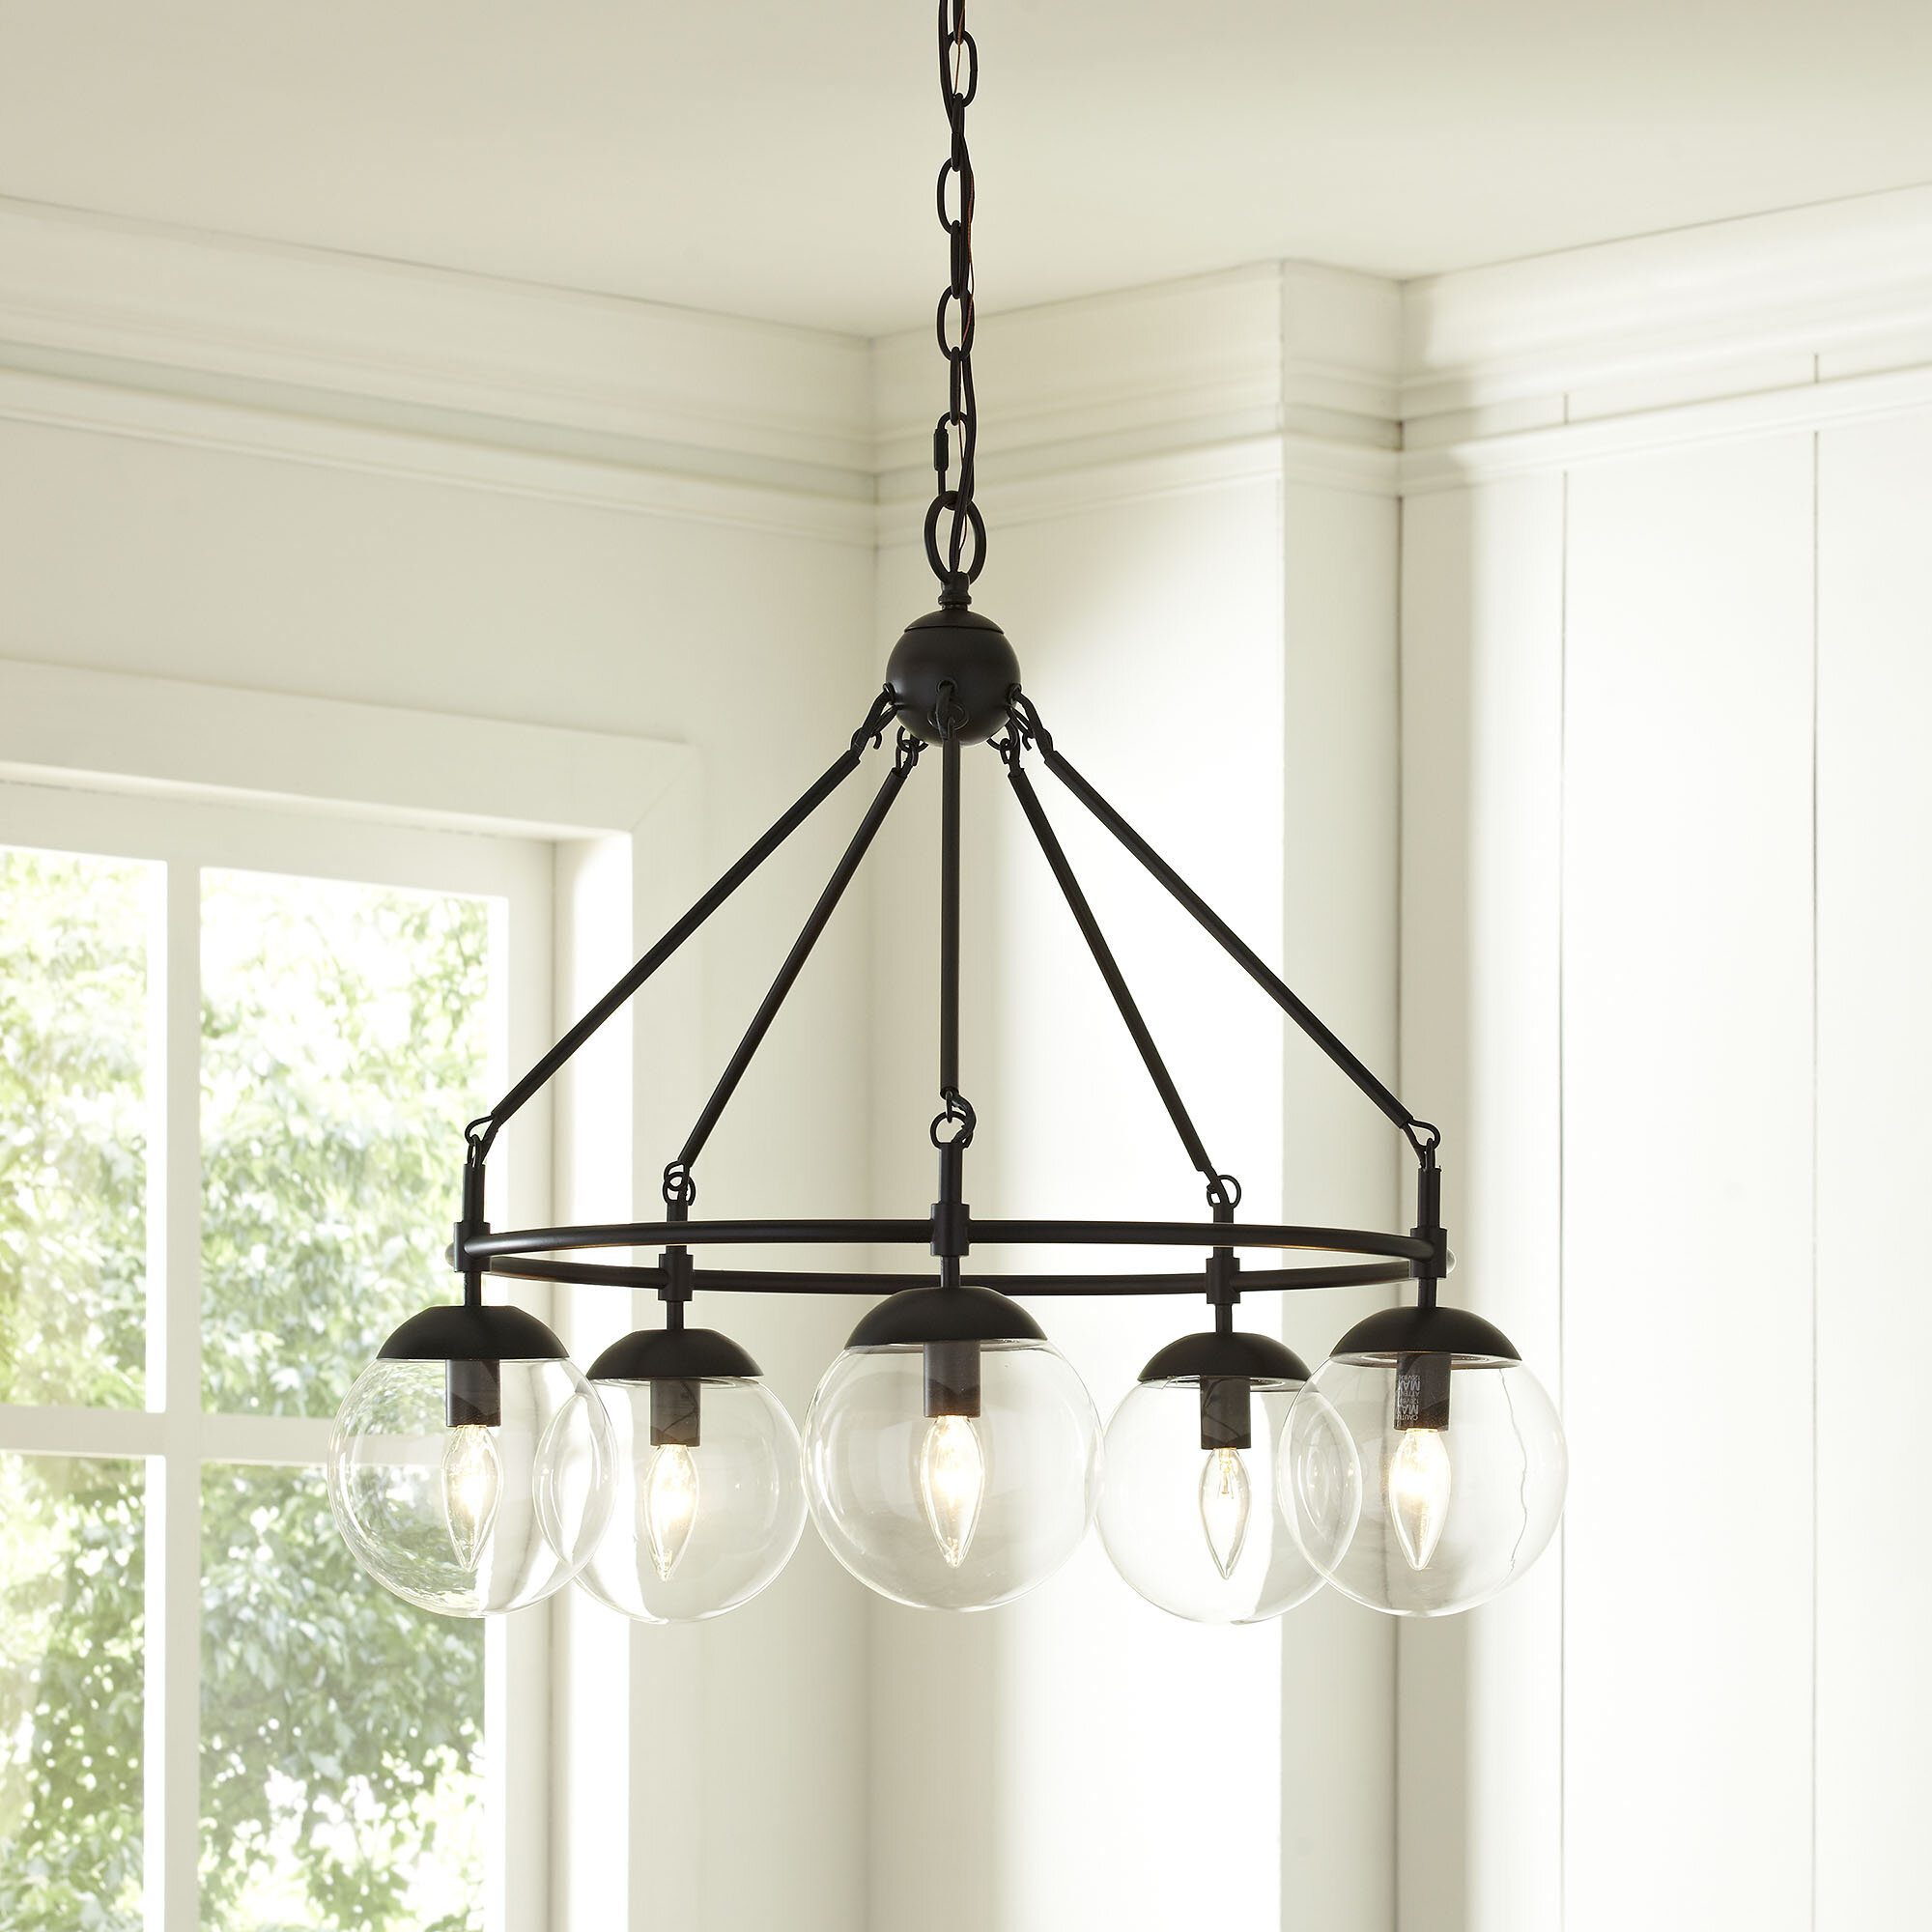 Cranston 5 light wagon wheel chandelier